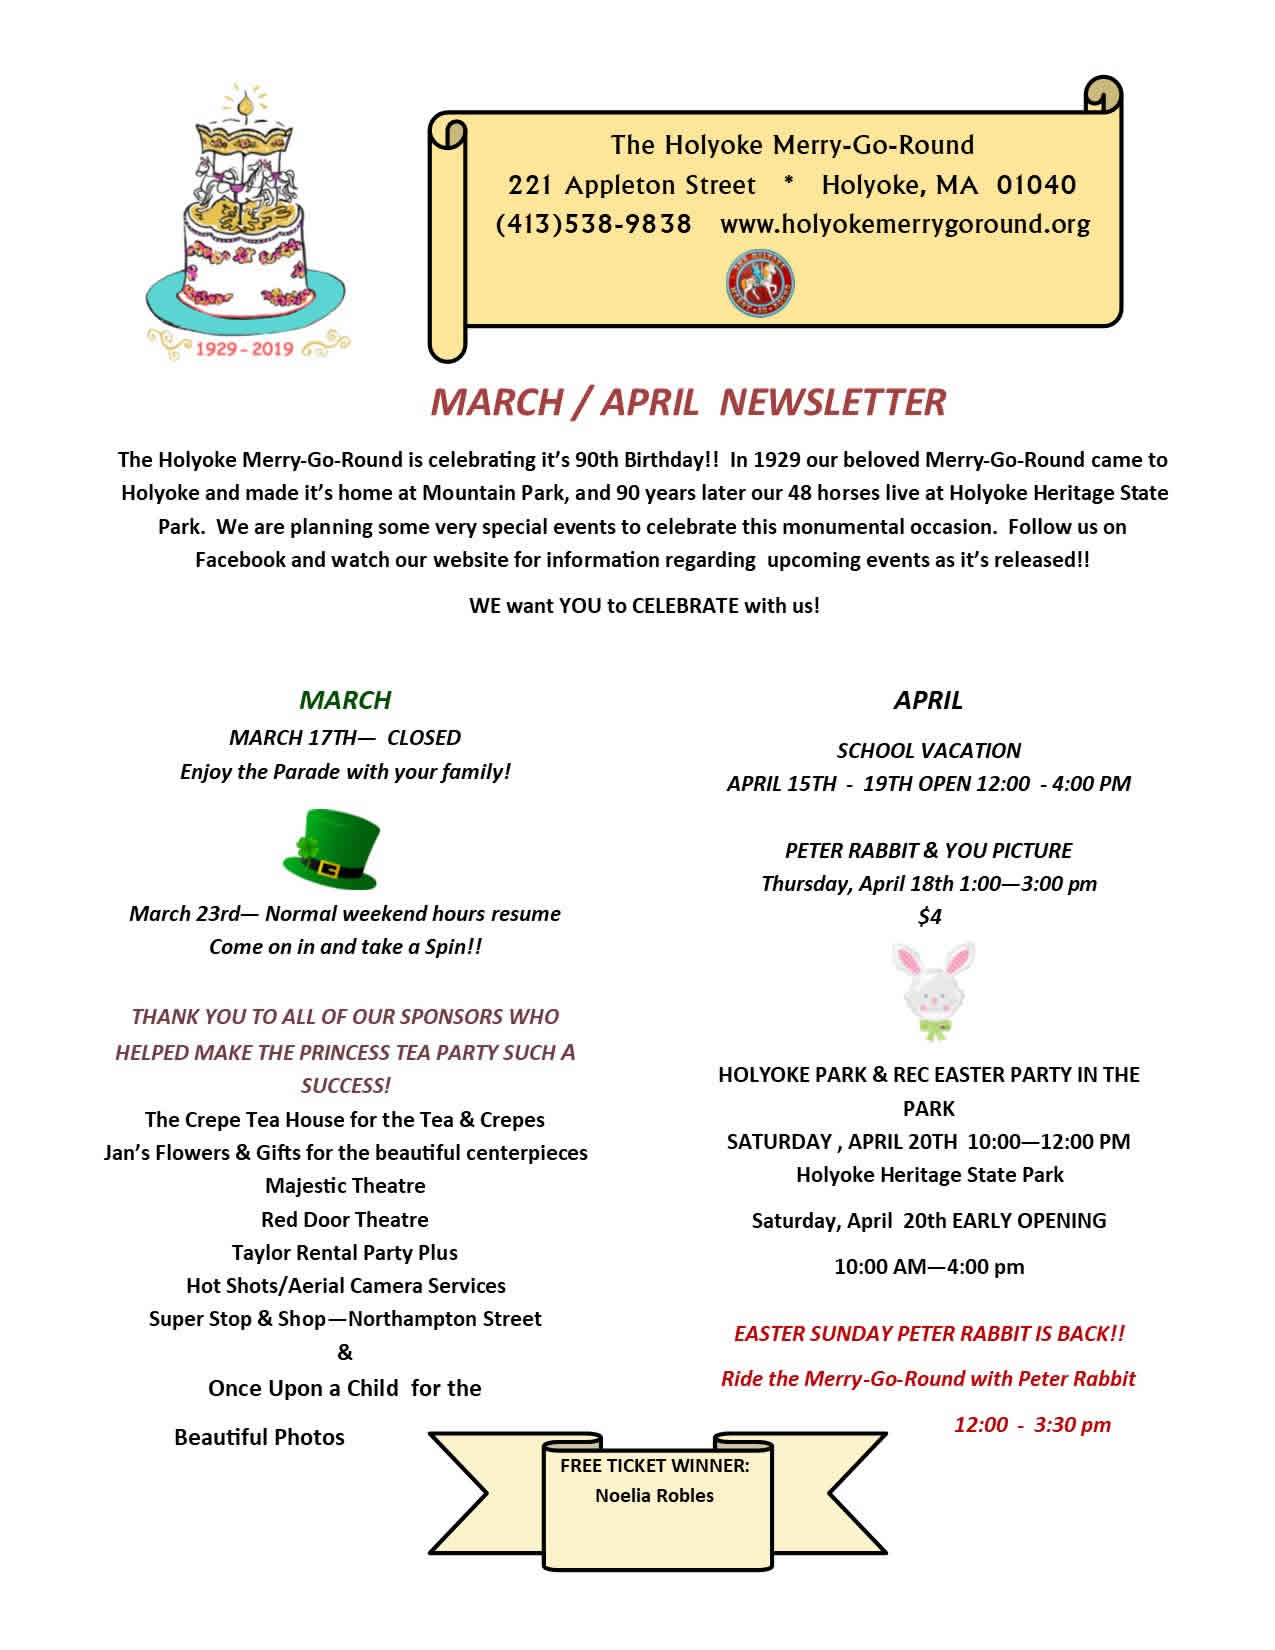 Holyoke Merry-Go-Round March & April Newsletter